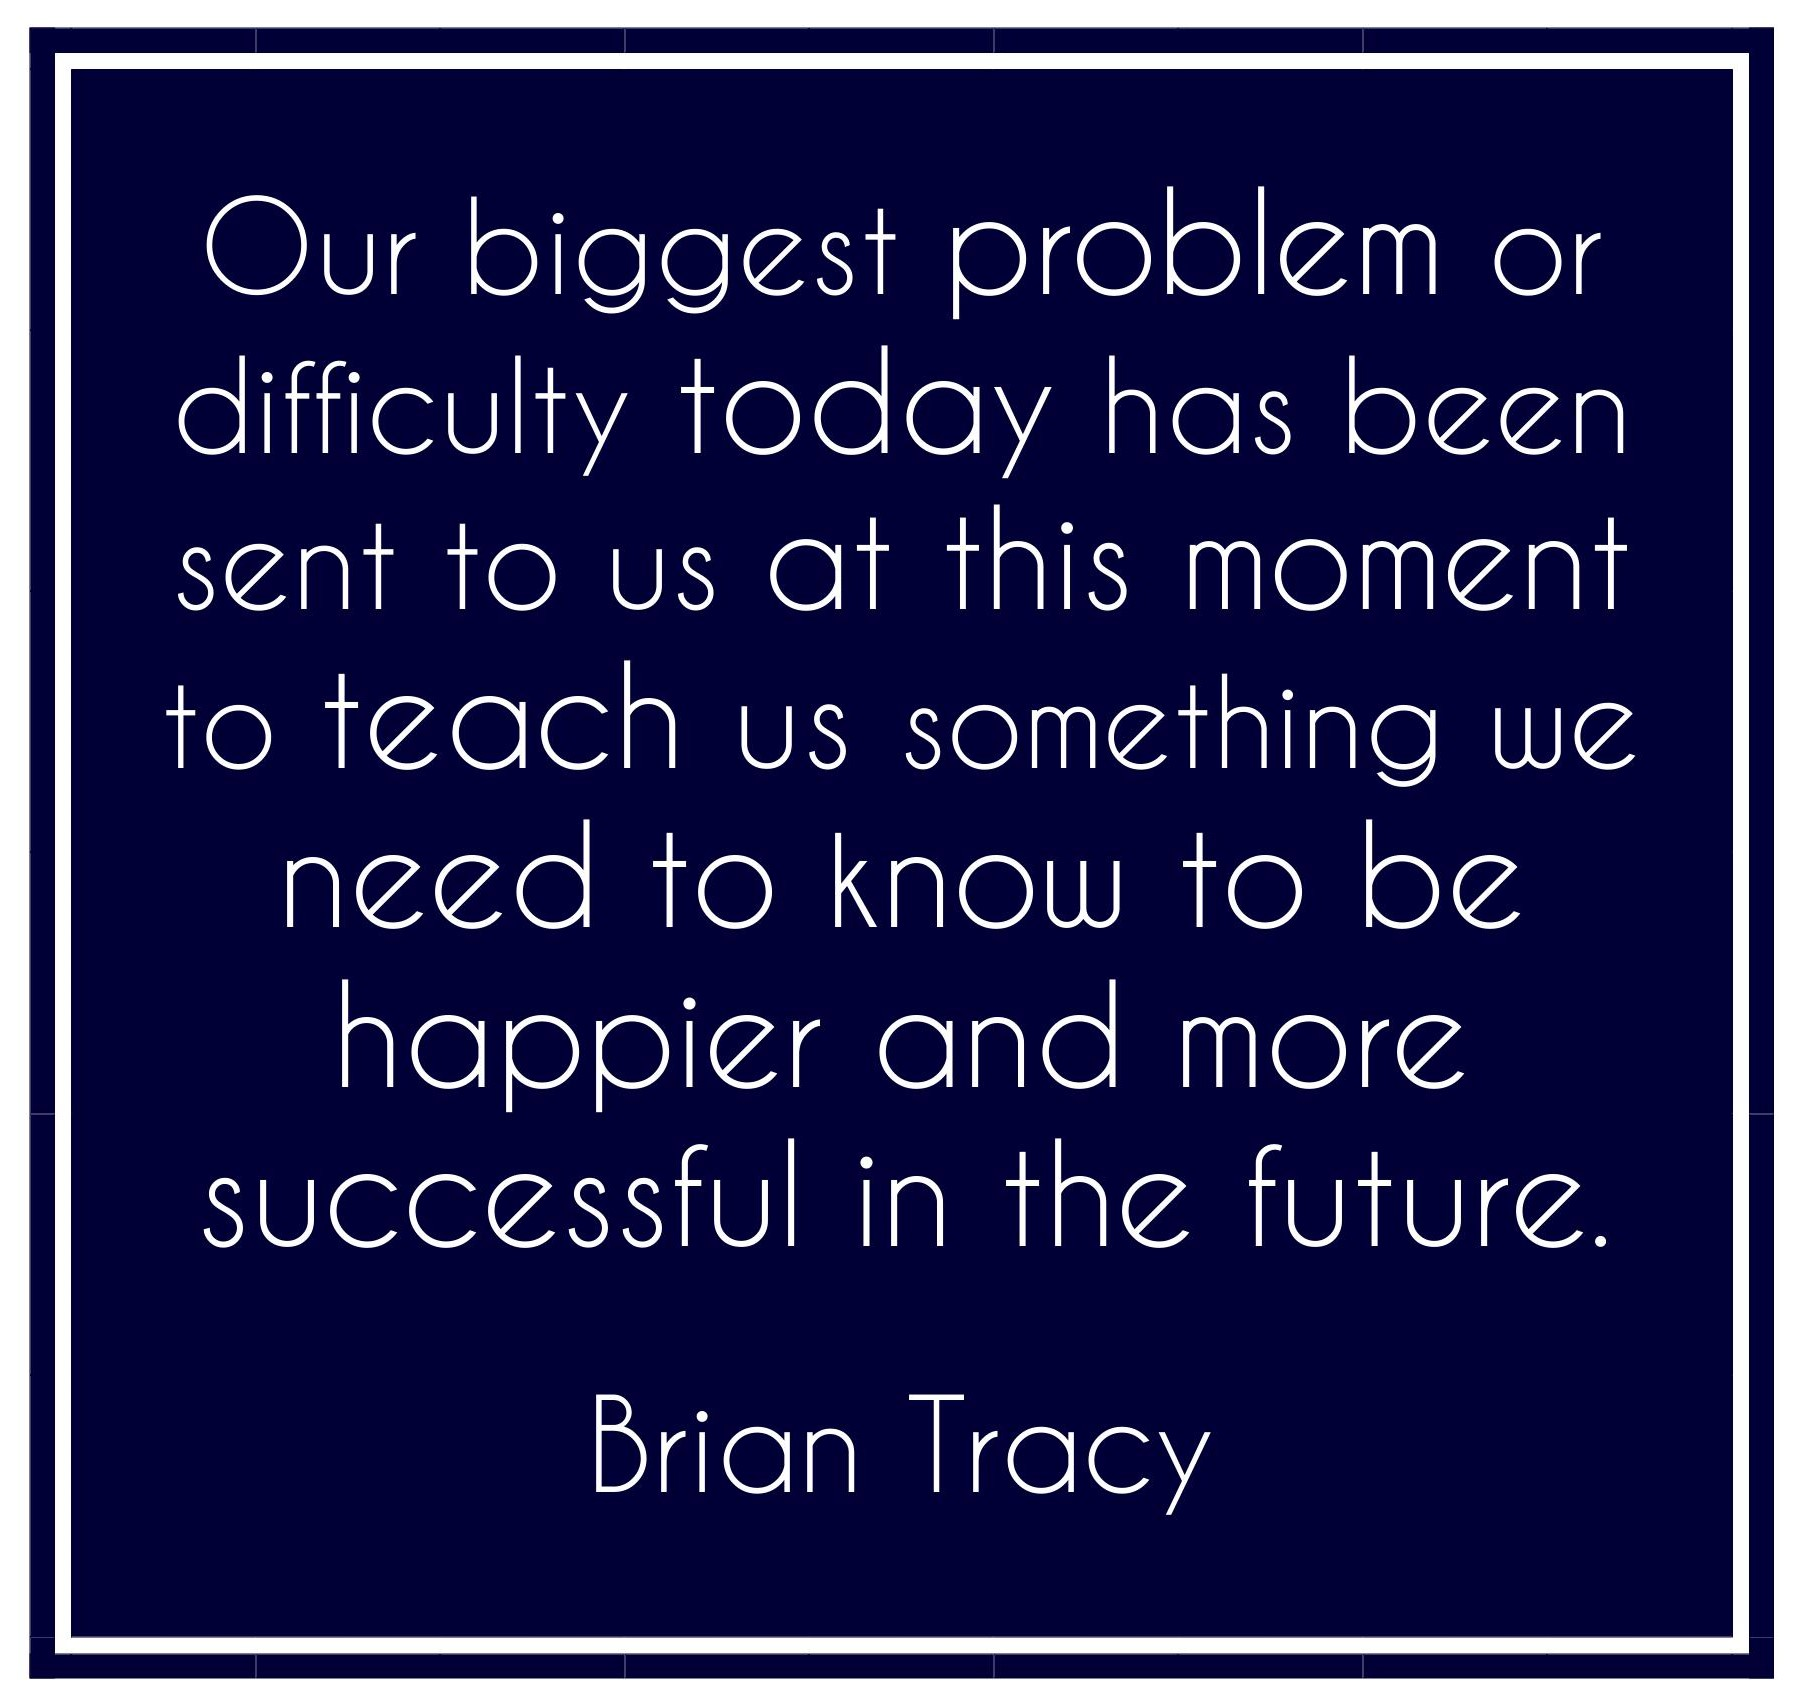 Our biggest problem or difficulty today has been sent to us